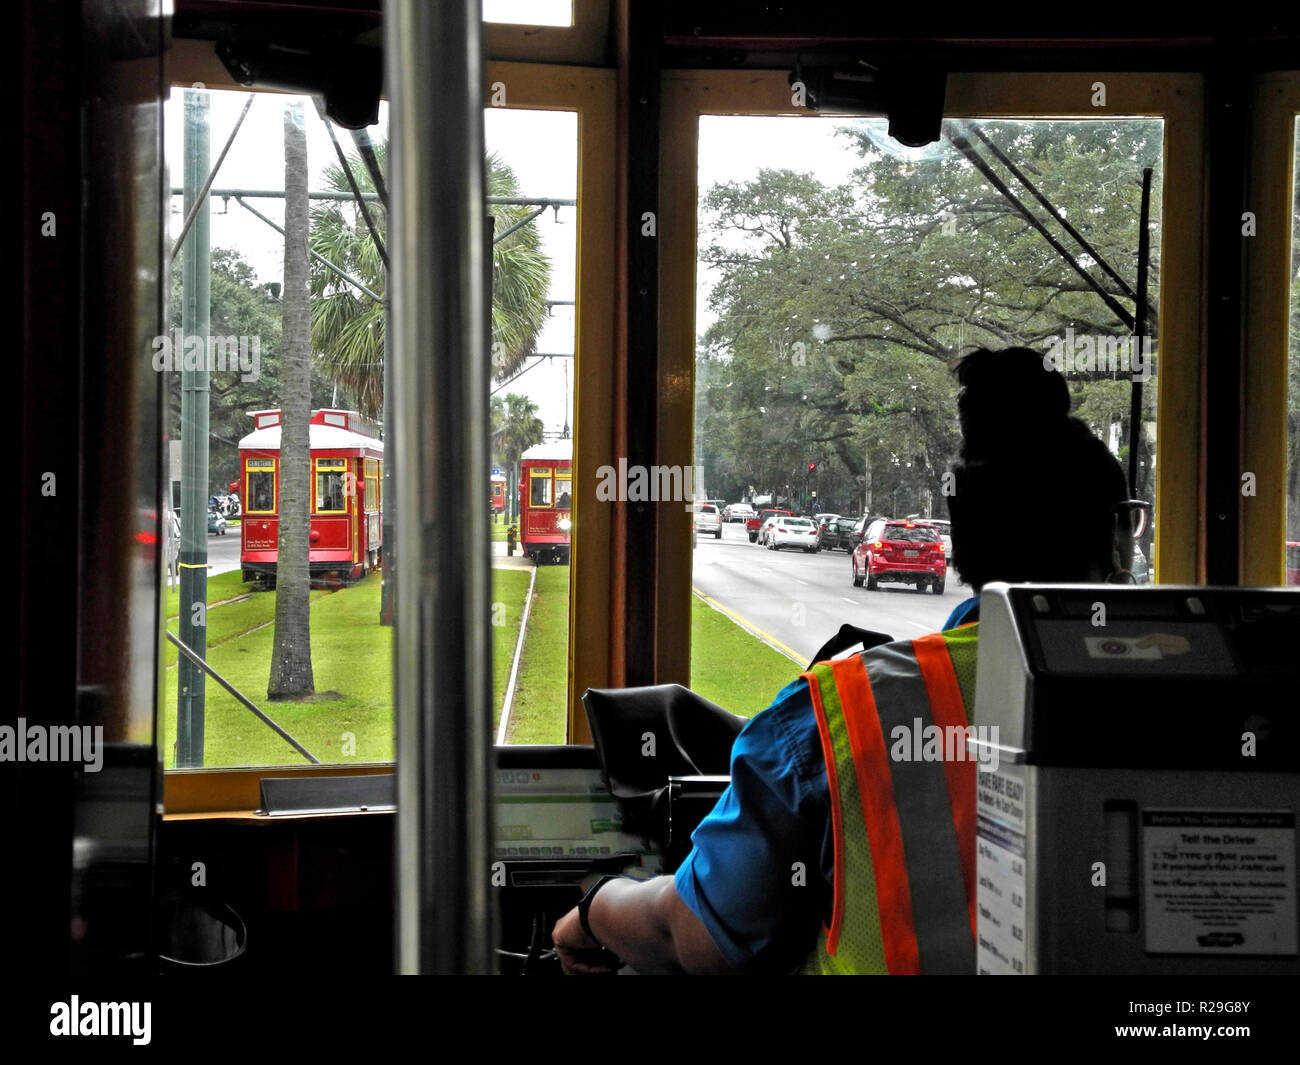 Inside a streetcar looking past the self-service ticket machine and the female driver of such historic electric vehicles that have been providing public transportation on steel rails throughout the southern city of New Orleans, Louisiana, USA, for more than a century. Twenty-five miles of track host four streetcar lines, including the iconic St. Charles line that started service in 1835 and is the oldest continuously-operating streetcar line in the world. The red cars seen here travel through the heart of the city on the Canal Street line and takes about 30 minutes to ride from end to end. - Stock Image